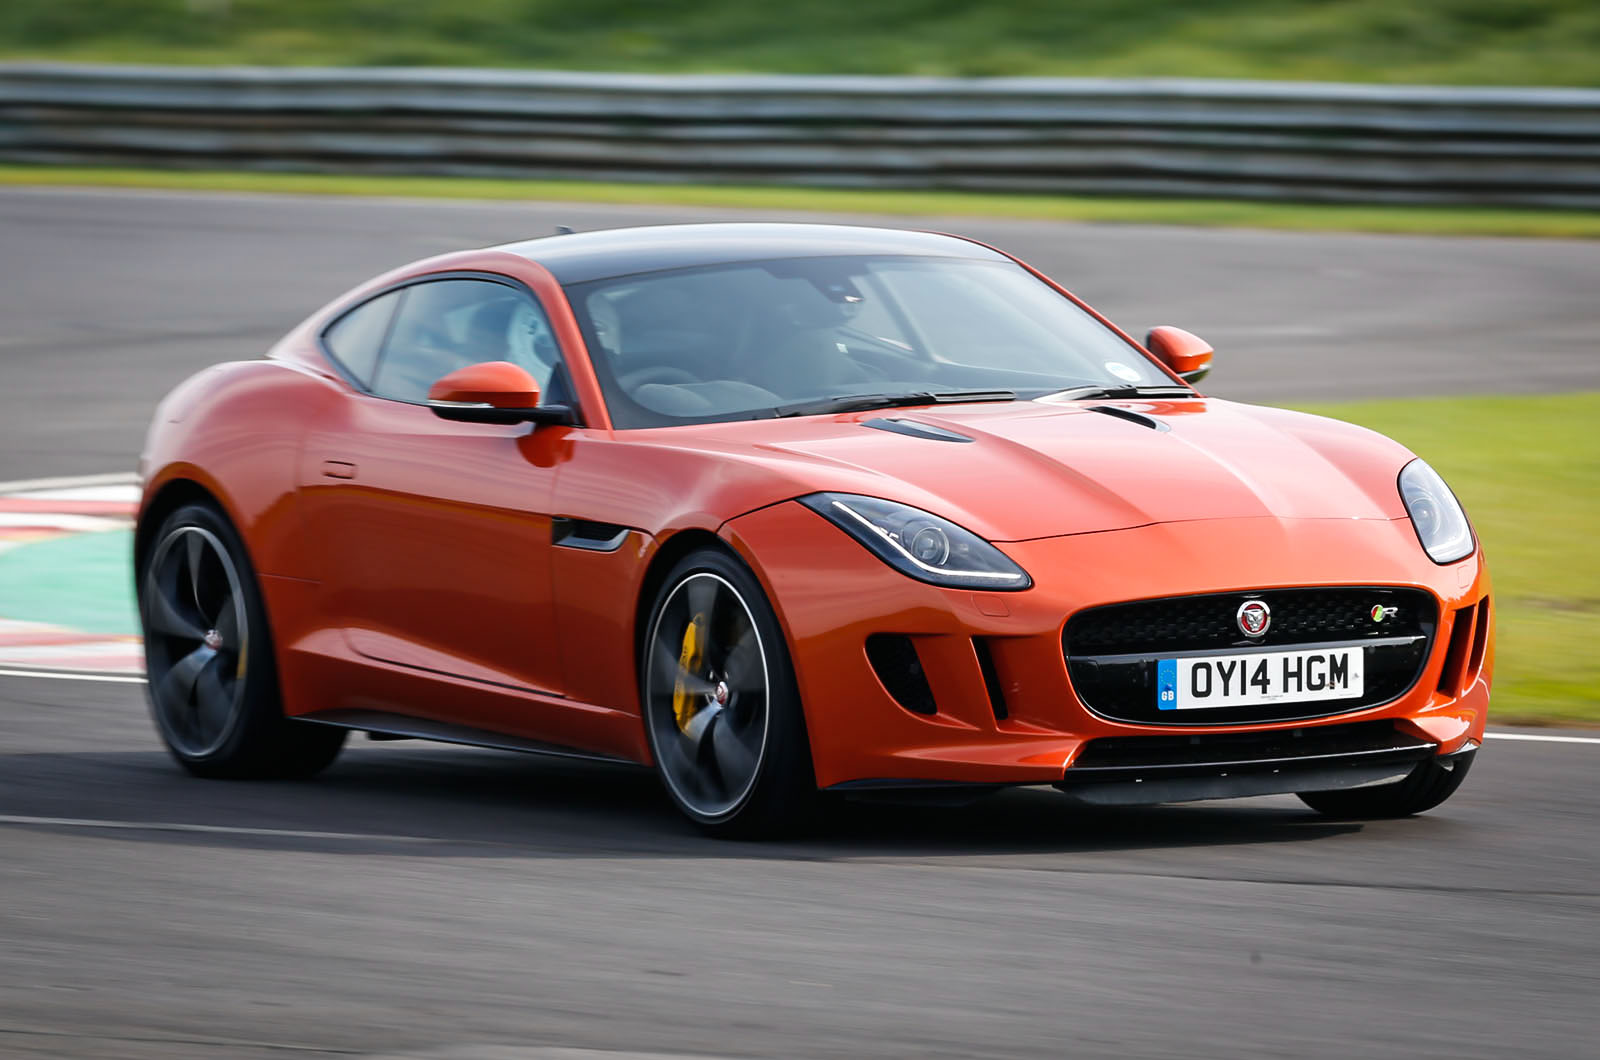 Britain's Best Driver's Car 2014 - the V8 muscle cars ...